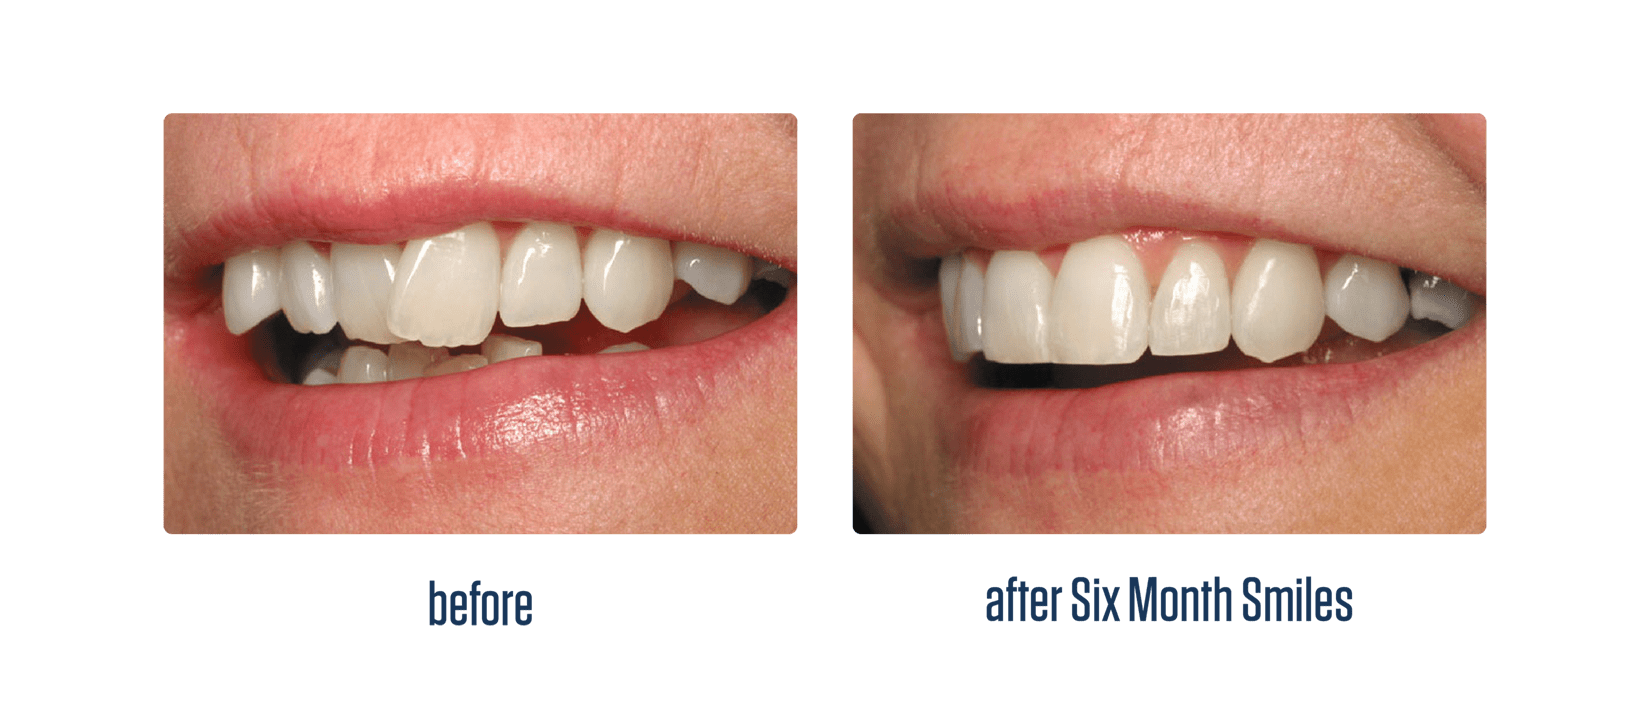 https://www.postfallsfamilydental.com/uploads/6month-smiles-beforeafter-teeth.png